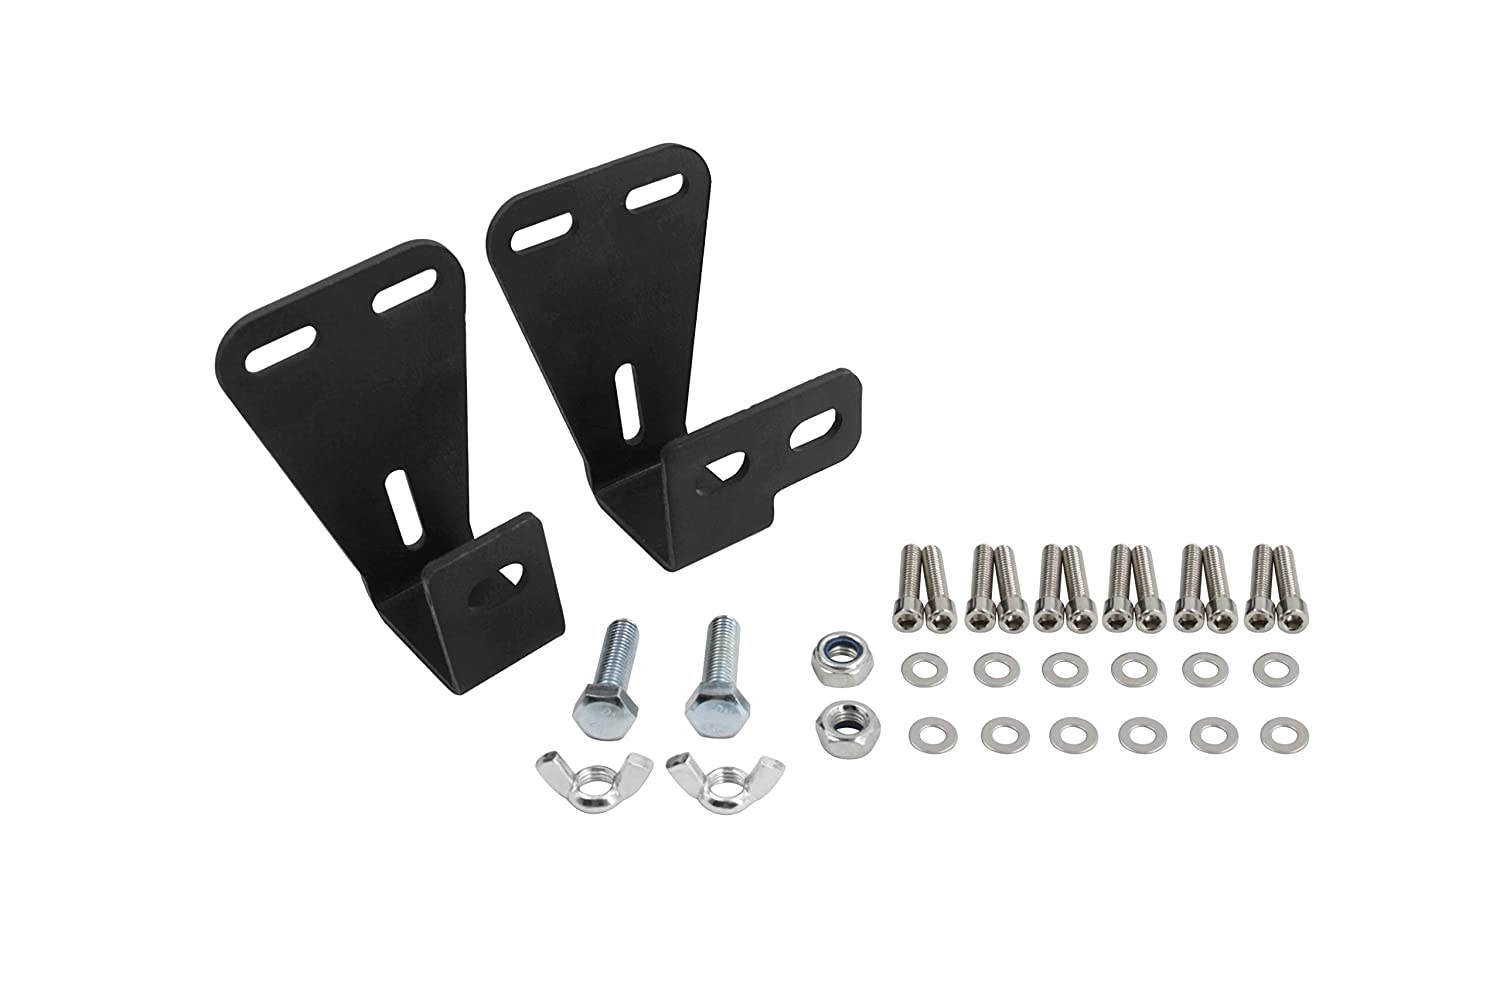 Off Road Hi-Lift Jack Mount Hood Bracket Fit Jeep Wrangler CJ//YJ//TJ 1944-2006 Tiewards 5559006075